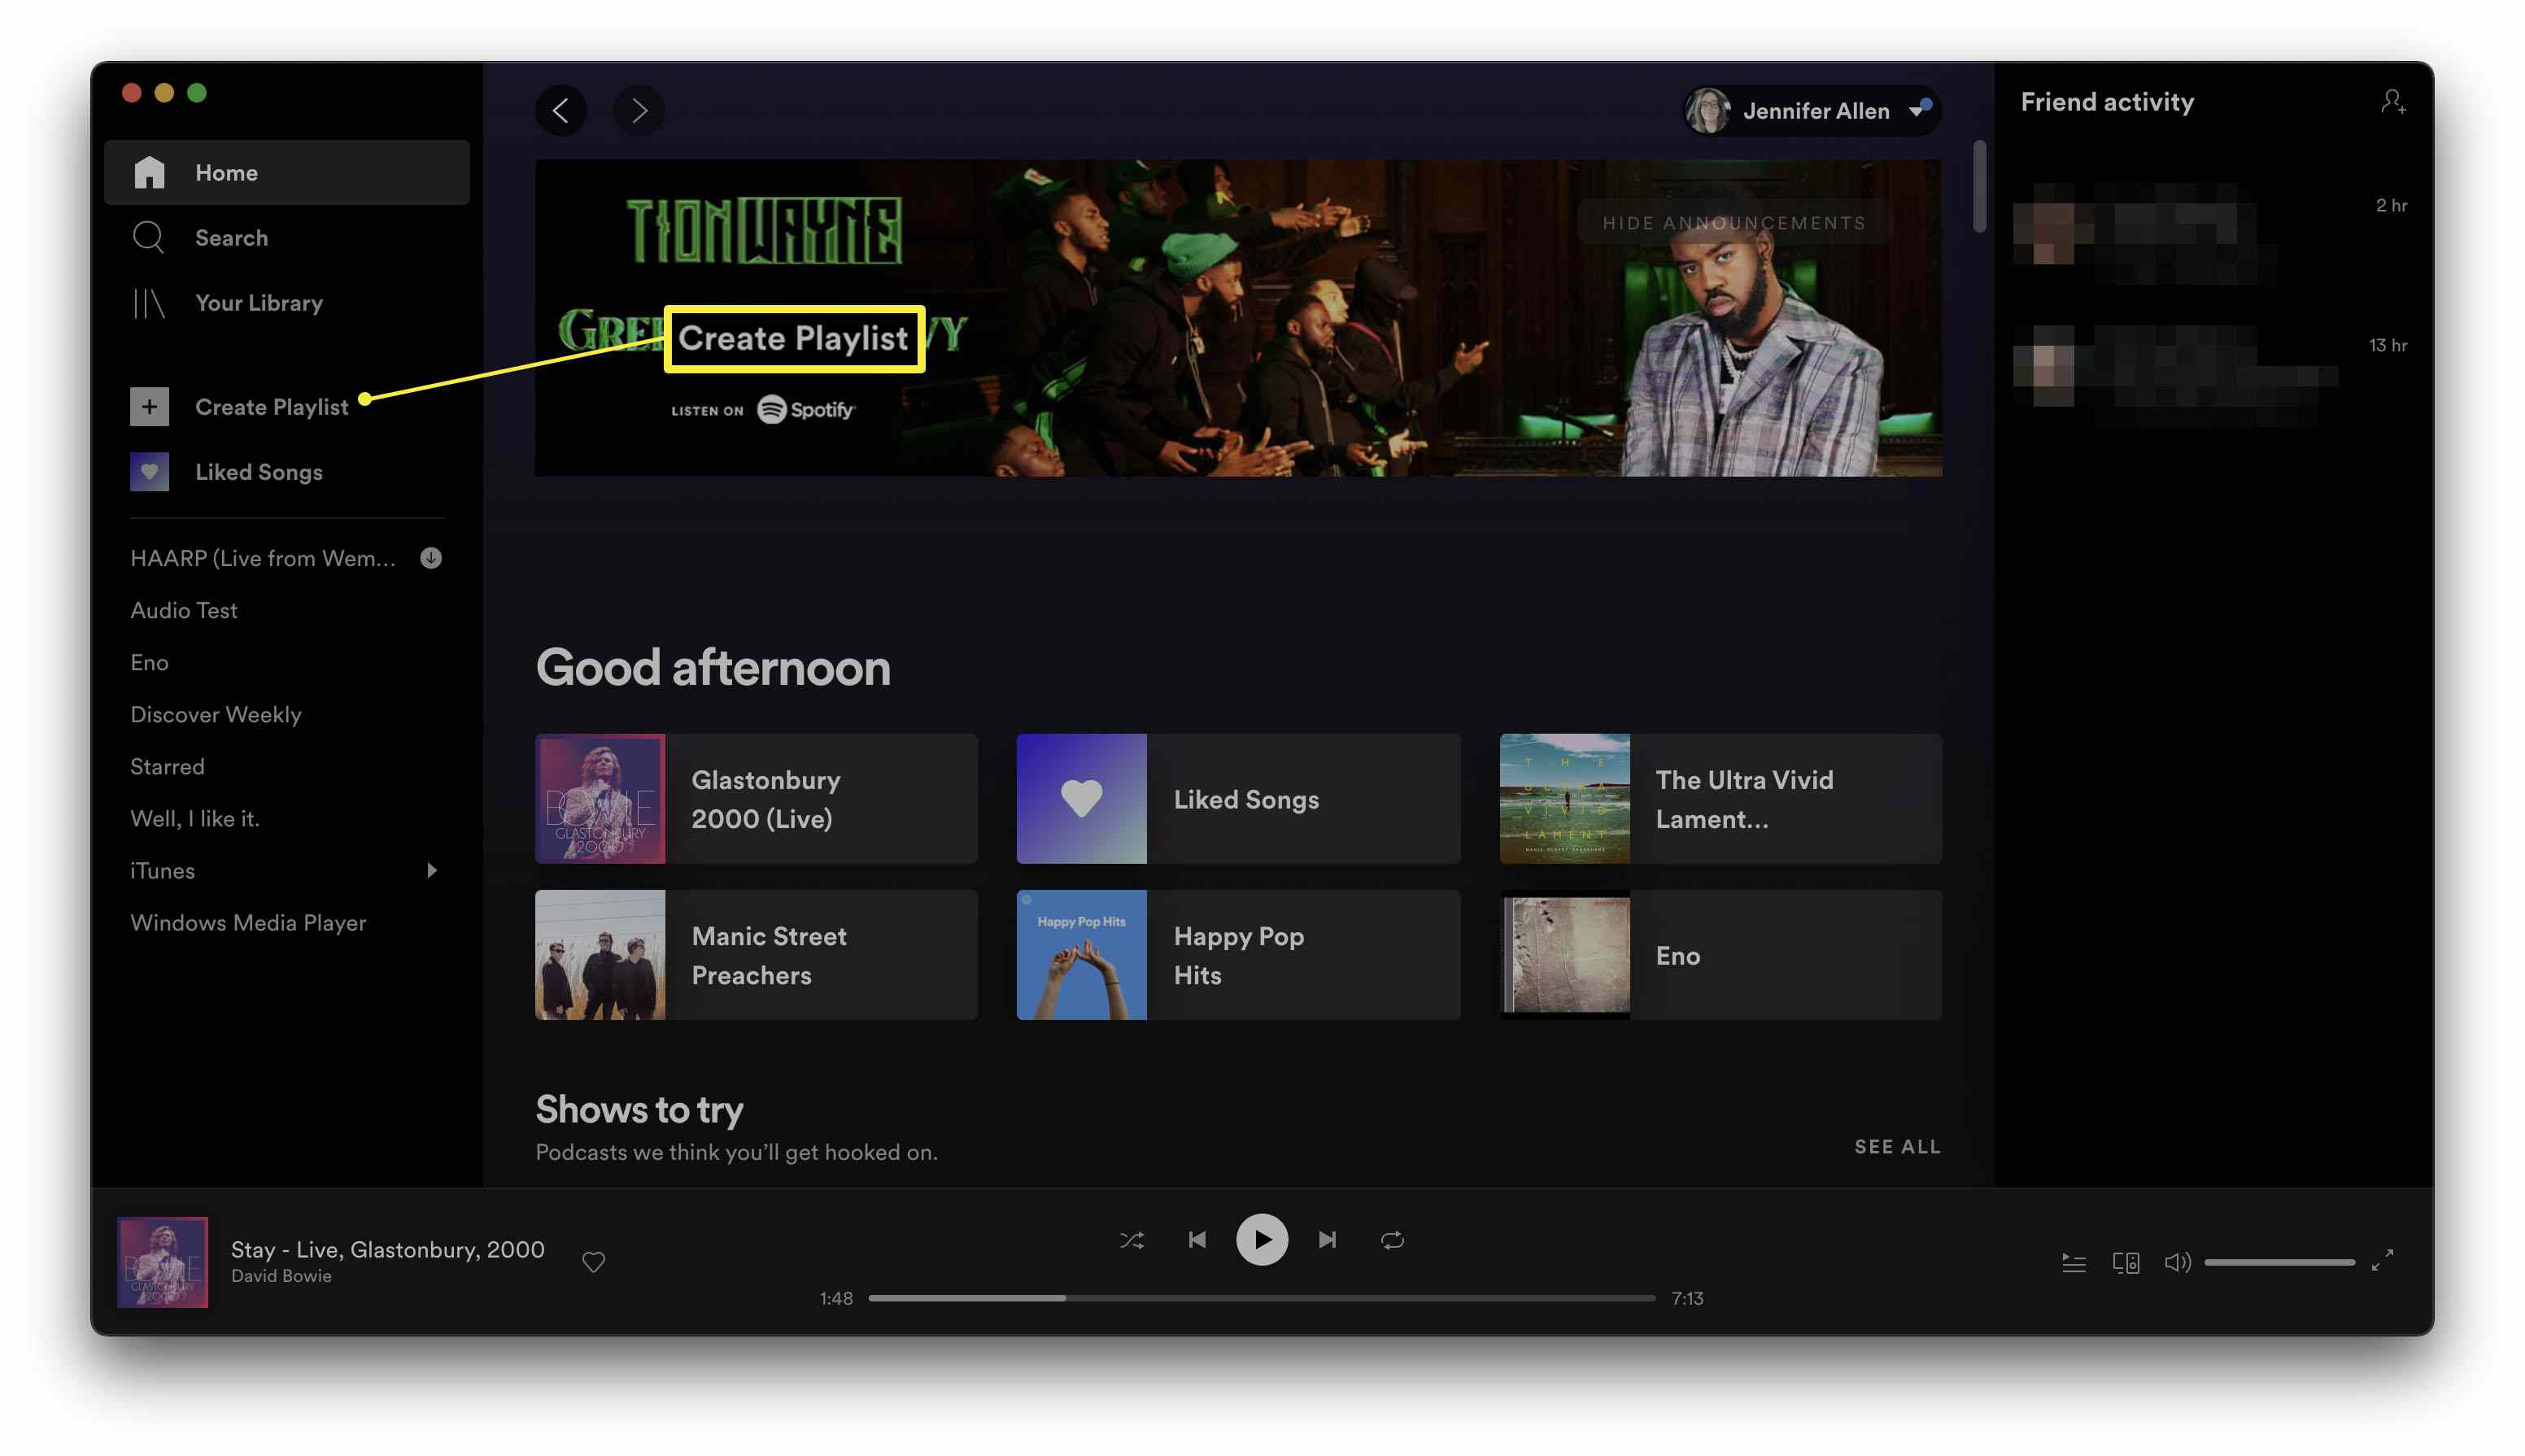 Spotify with Create Playlist highlighted